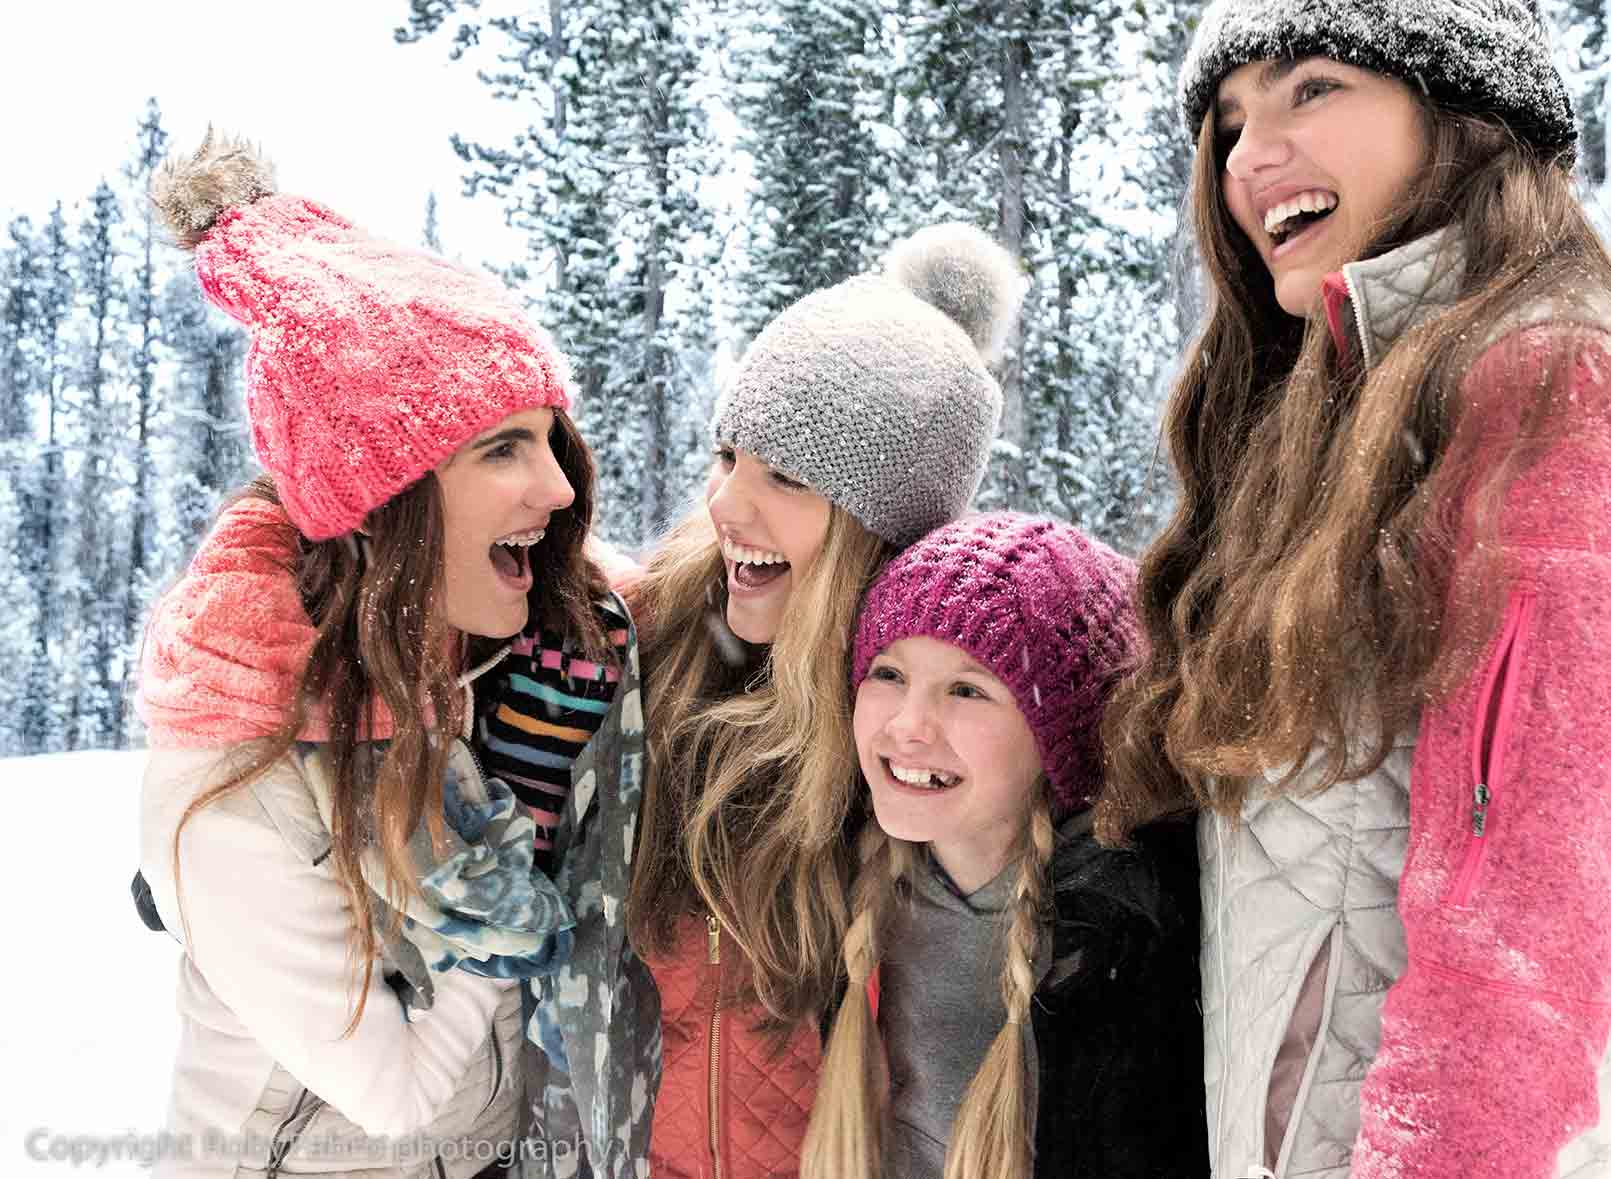 Girls bonding outside in a winter day.Breckenridge, Colorado. Lifestyle photography